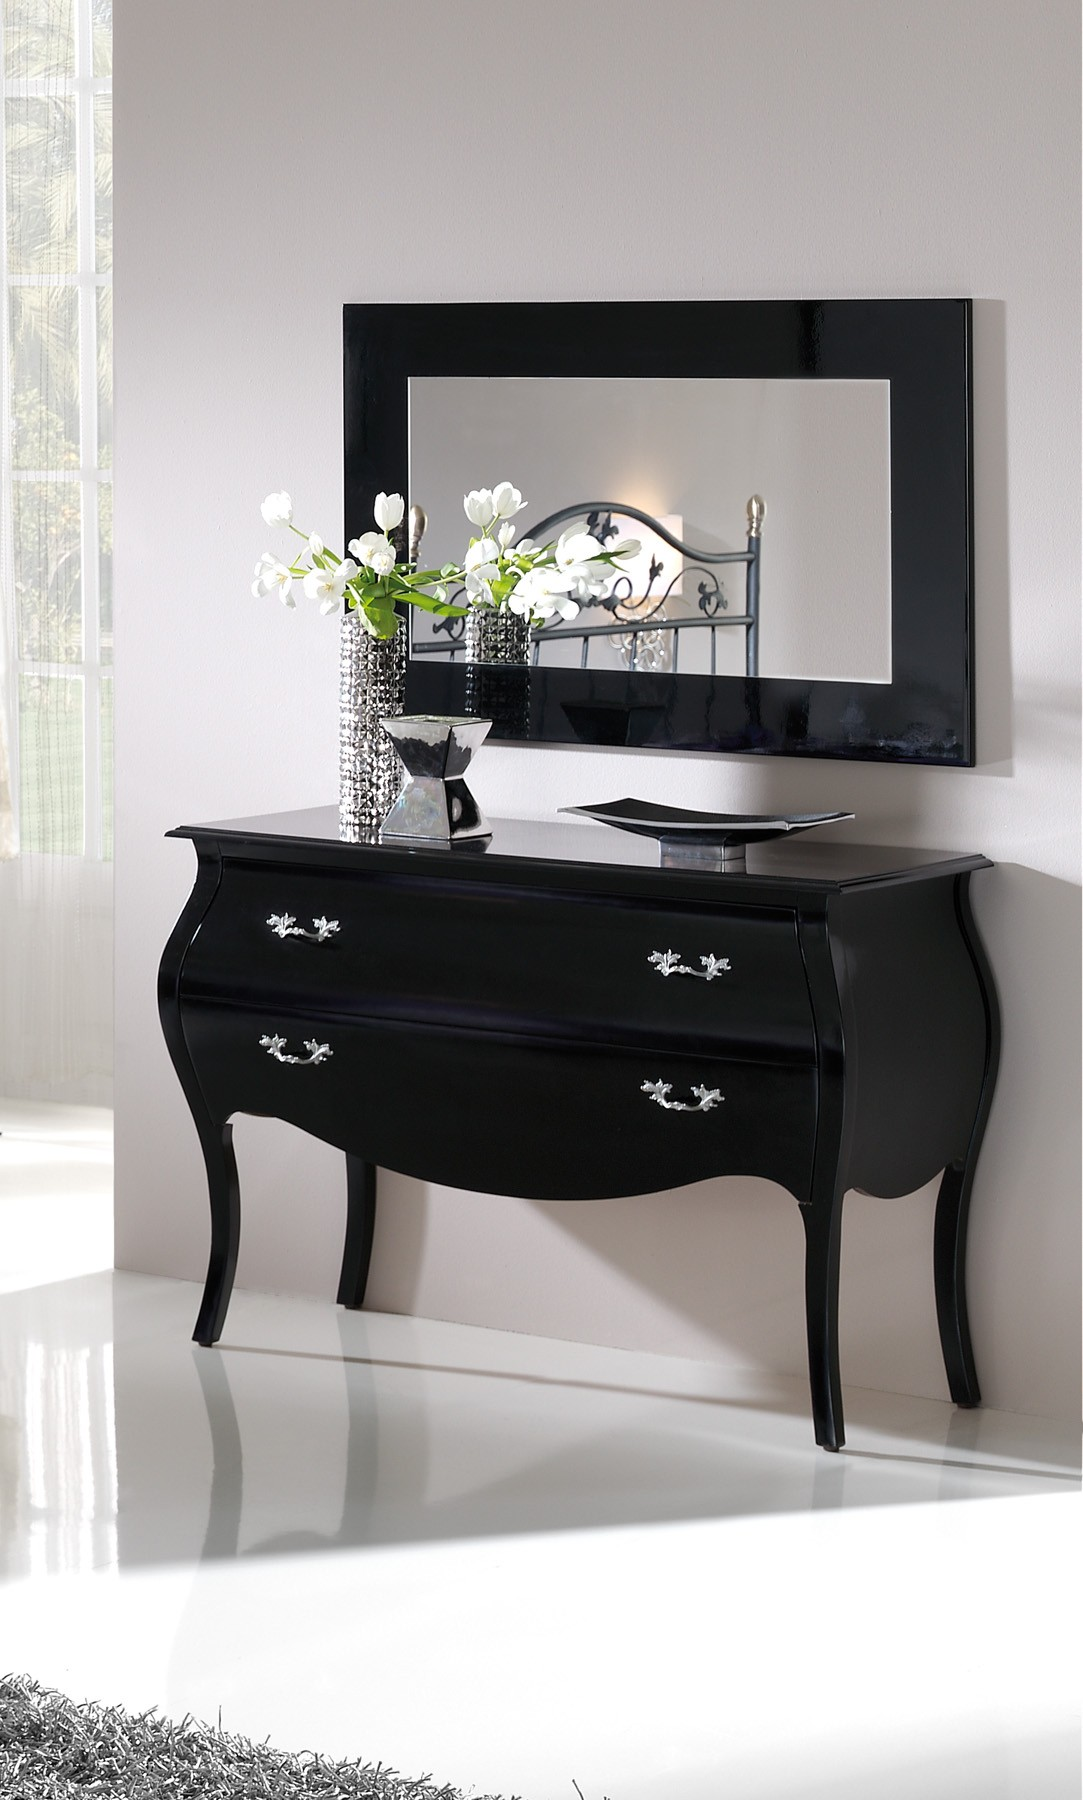 le style baroque pour une d co chic et exub rante weegora. Black Bedroom Furniture Sets. Home Design Ideas